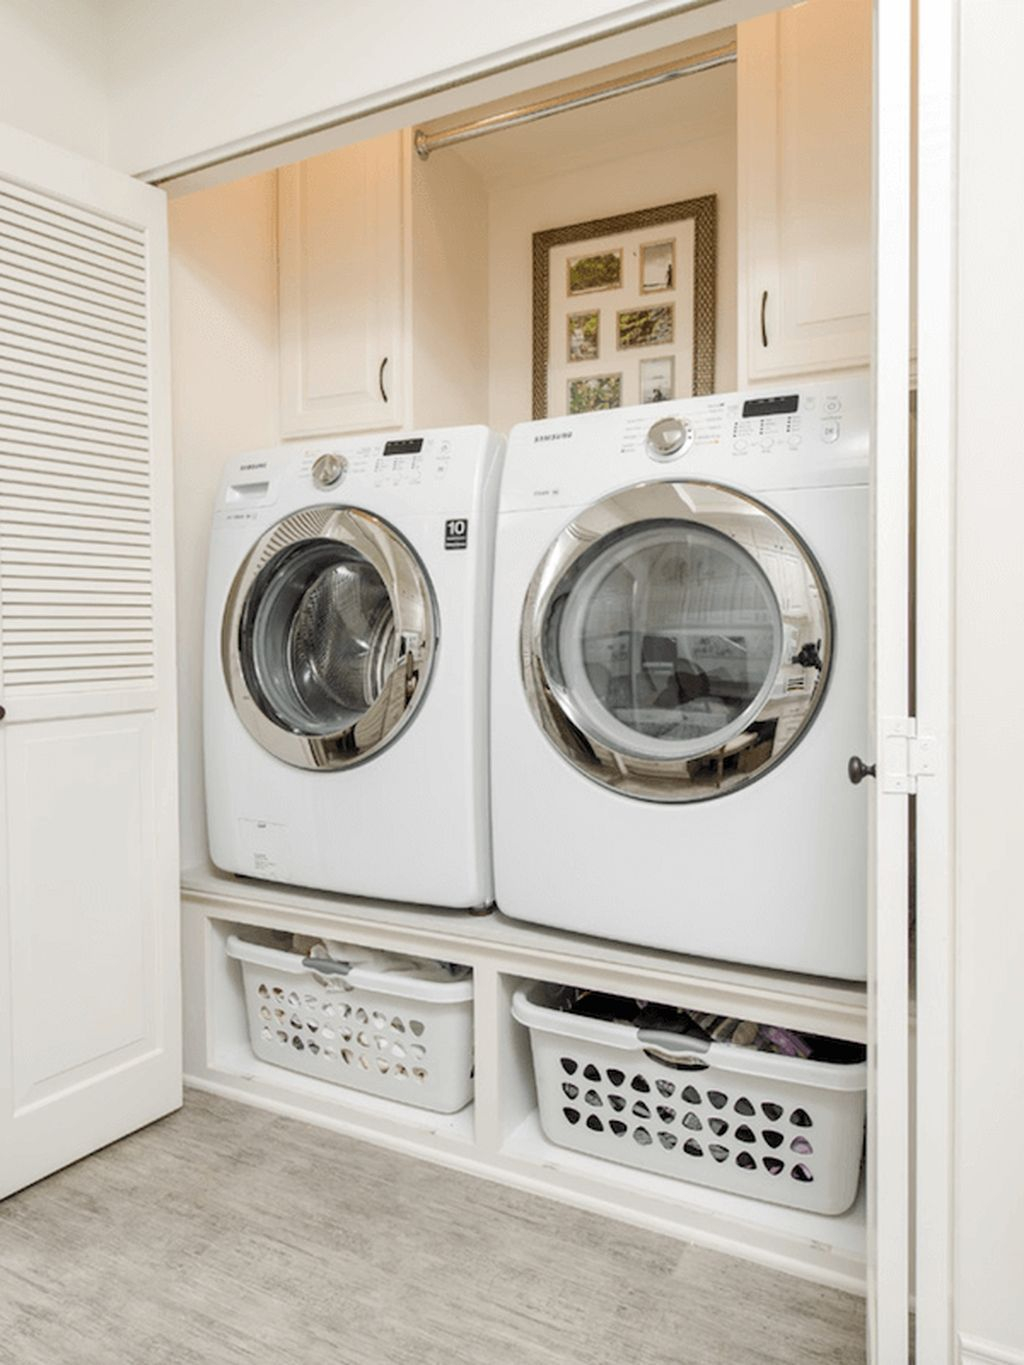 Favored Laundry Room Organization Ideas To Try 01